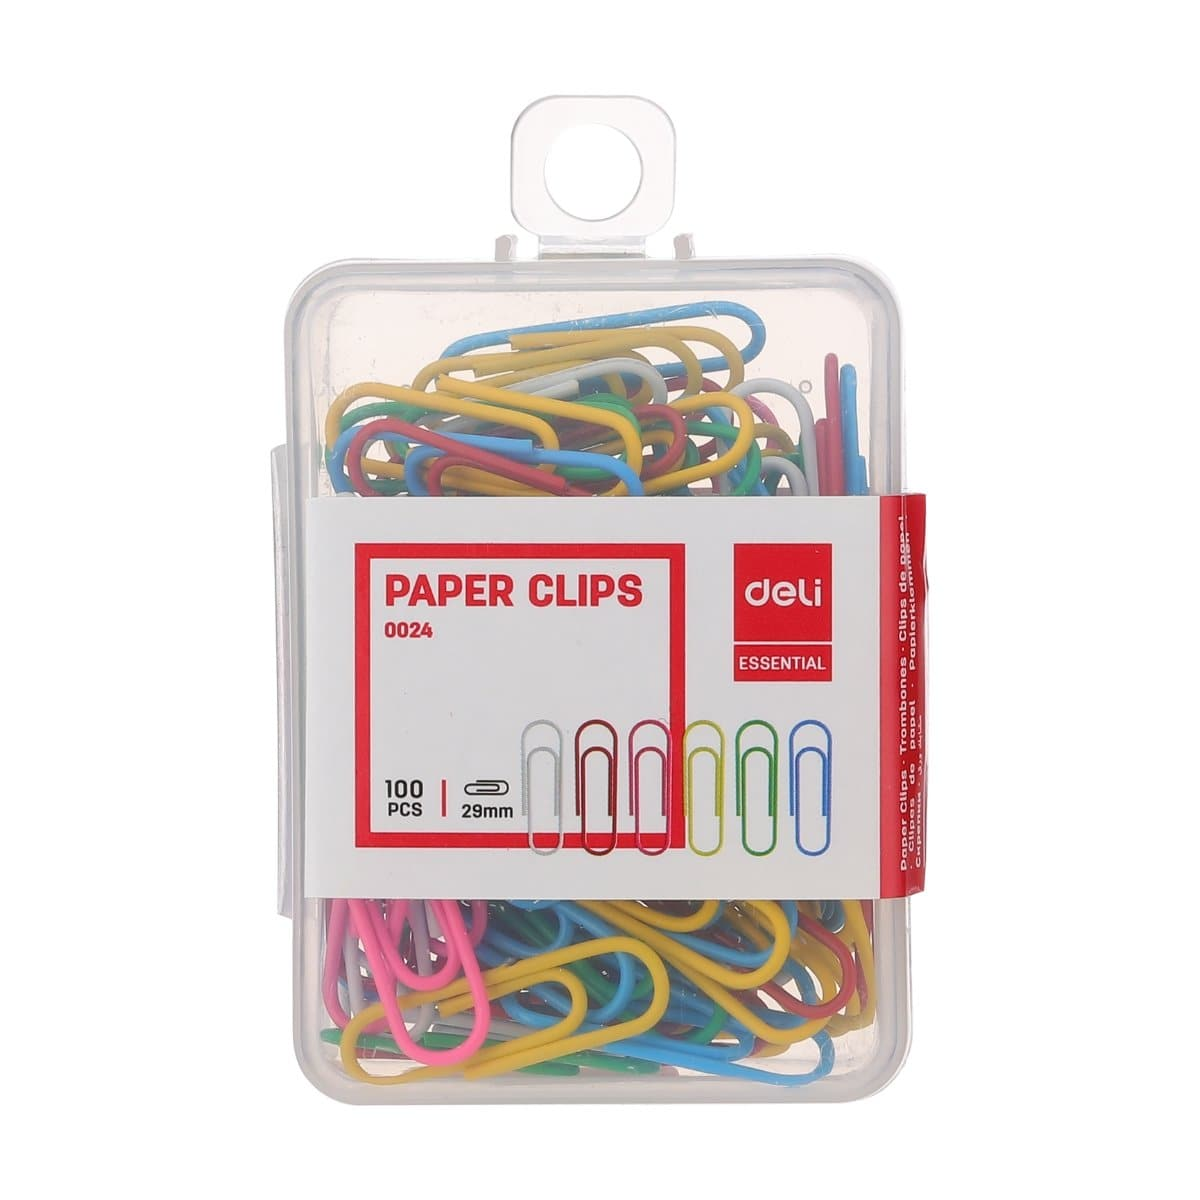 deli Colored Paper Clips, 29mm, 100/pack, Assorted Colors